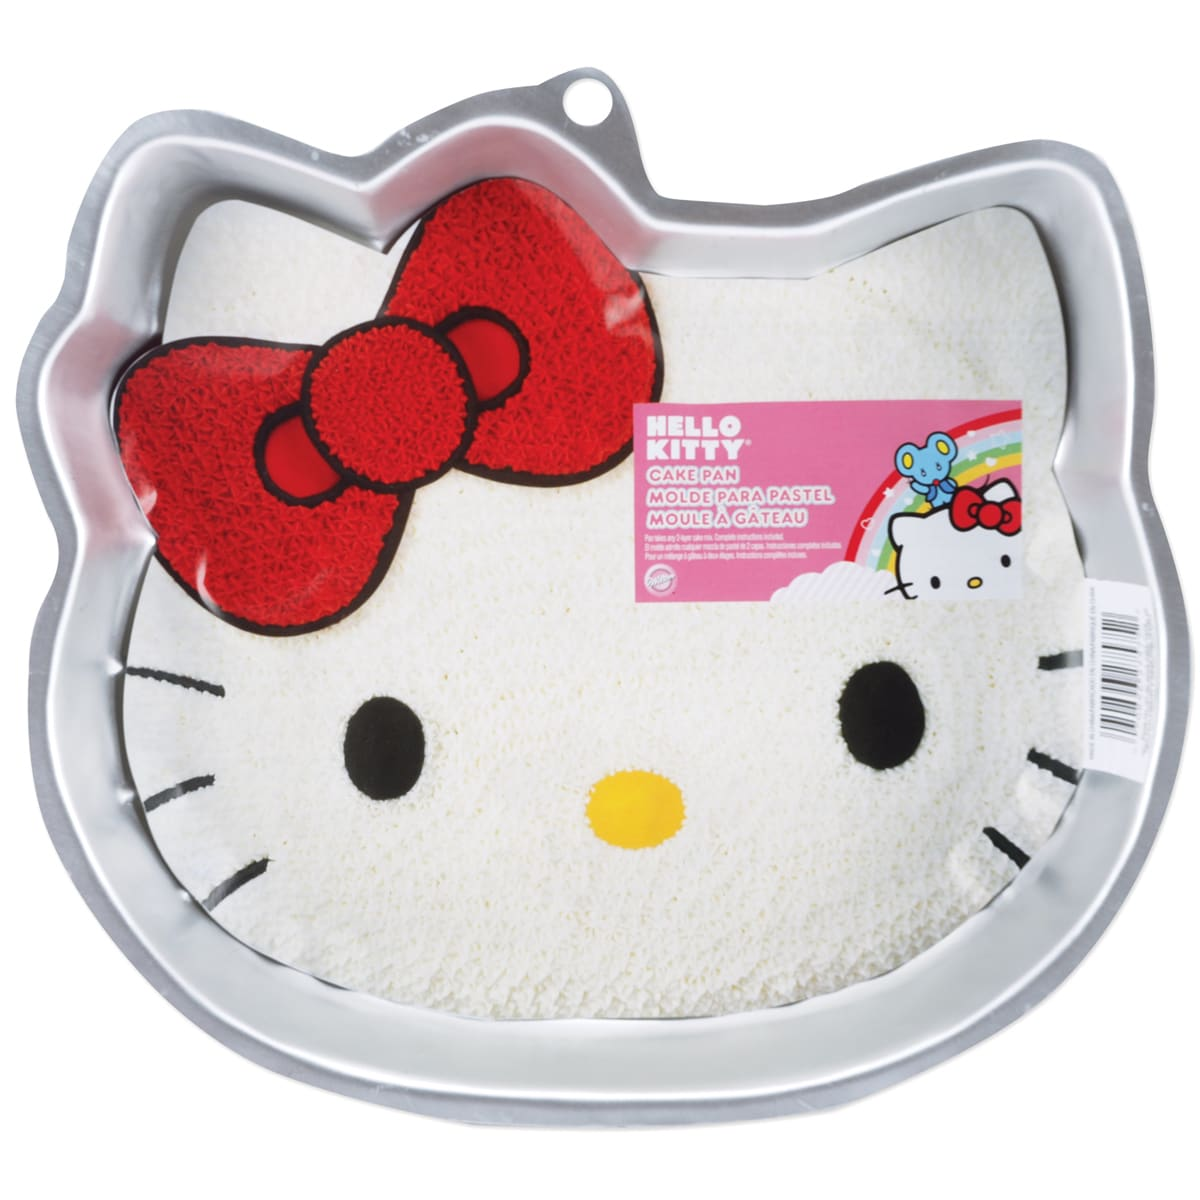 Wilton 'Hello Kitty' Novelty Cake Pan at Sears.com